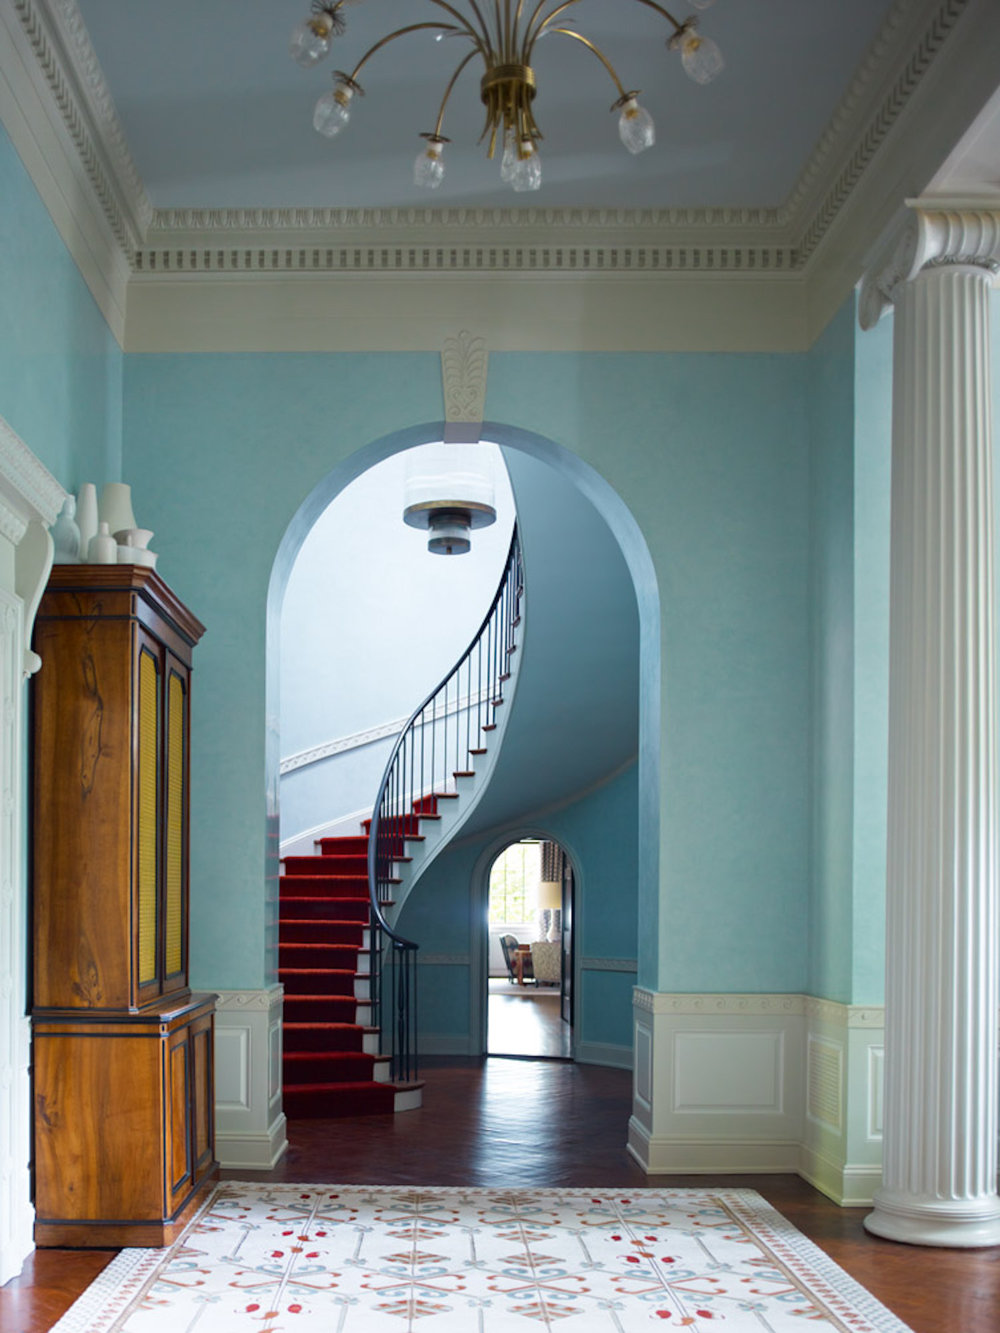 0901_stair hall.jpg